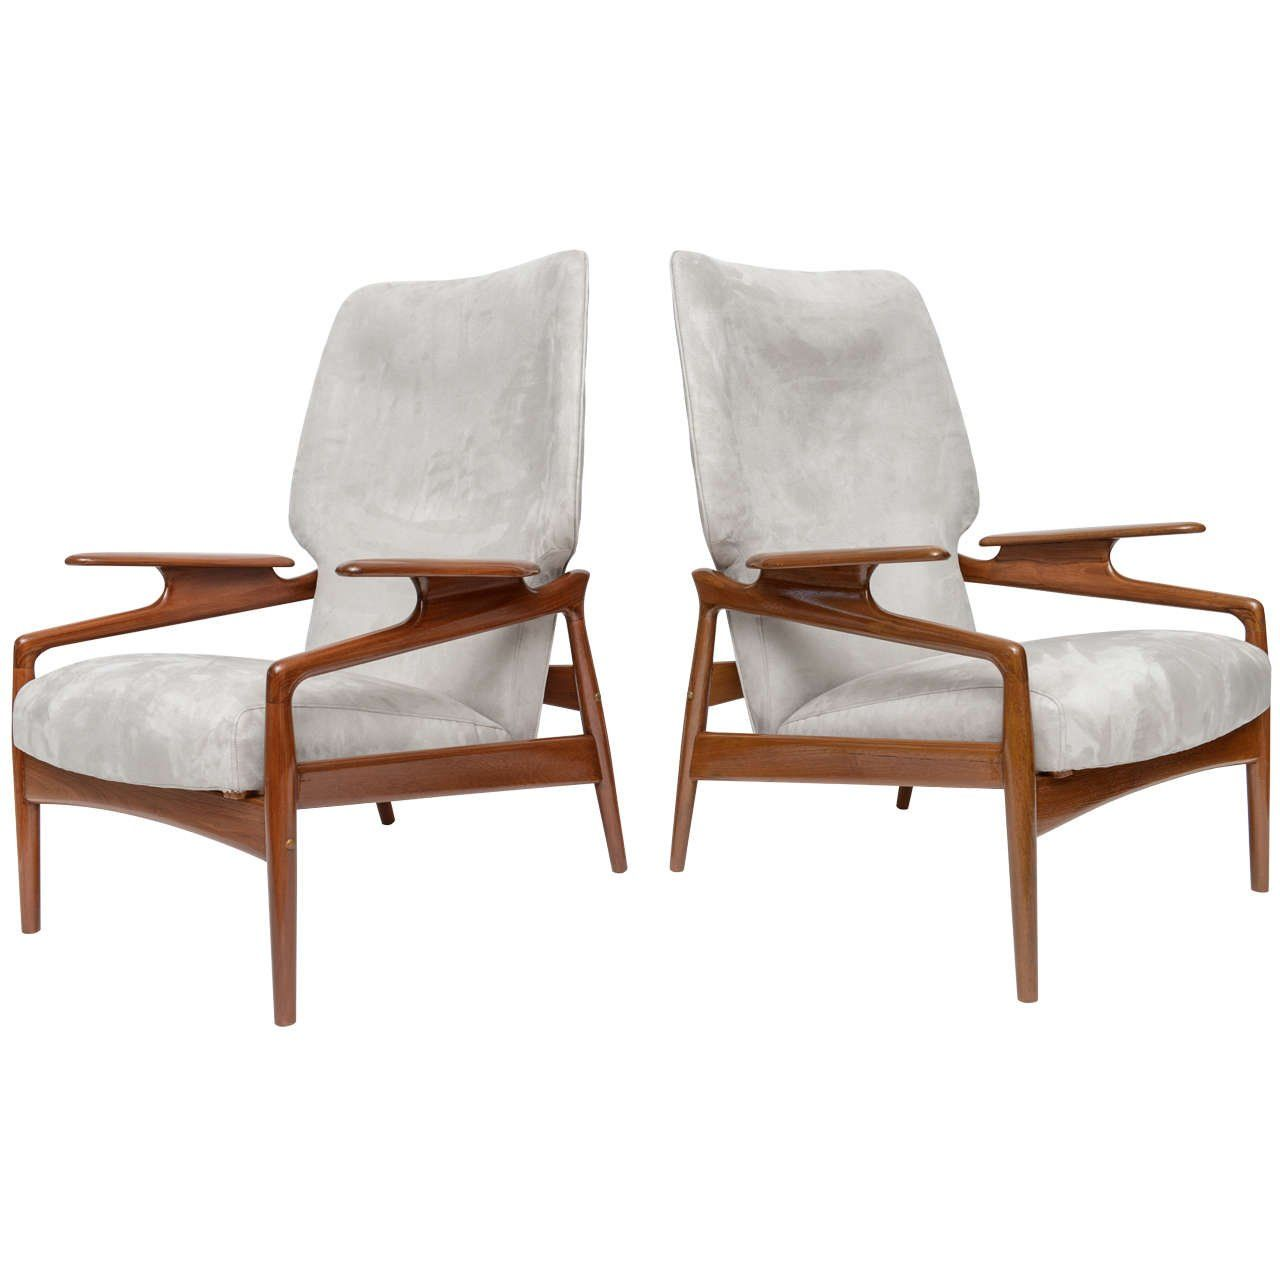 Pair Of Danish Modern Armchairs, Manner Of Finn Juhl